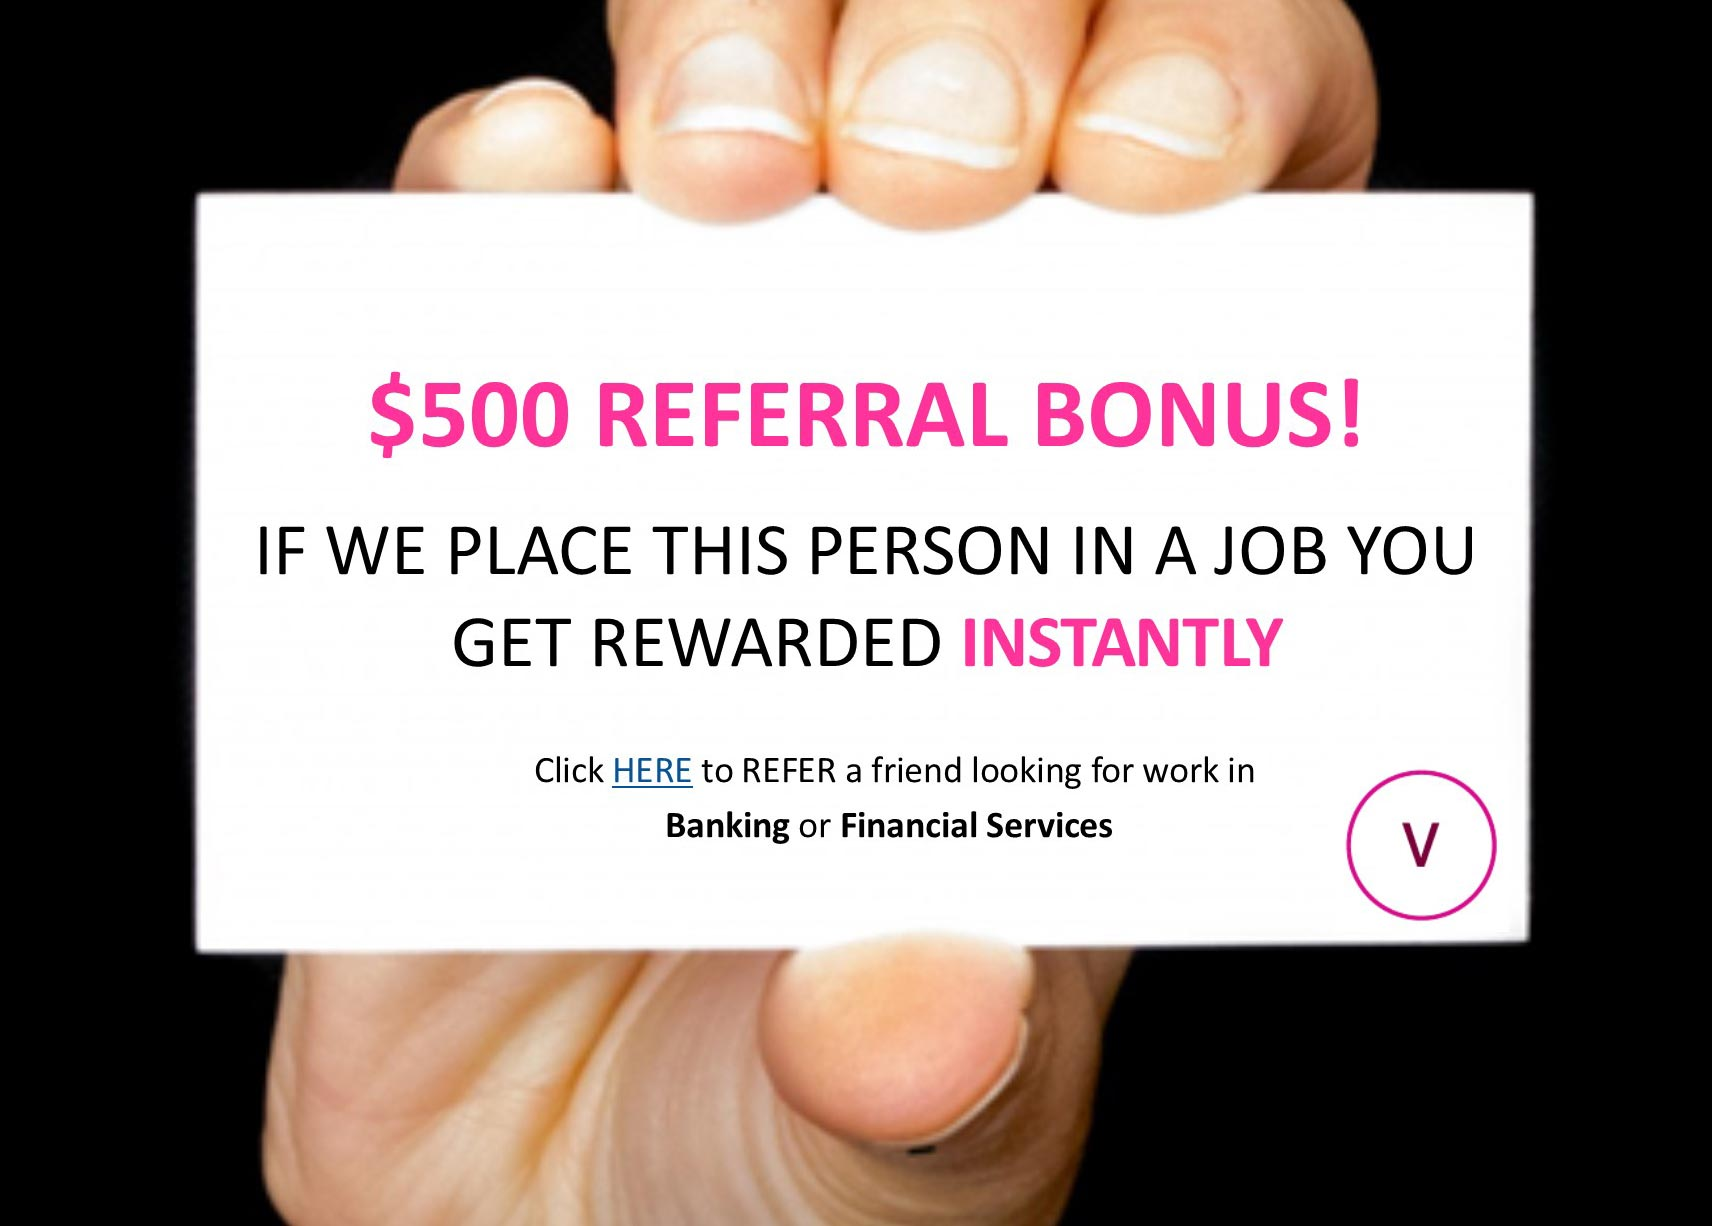 $500 referral bonus